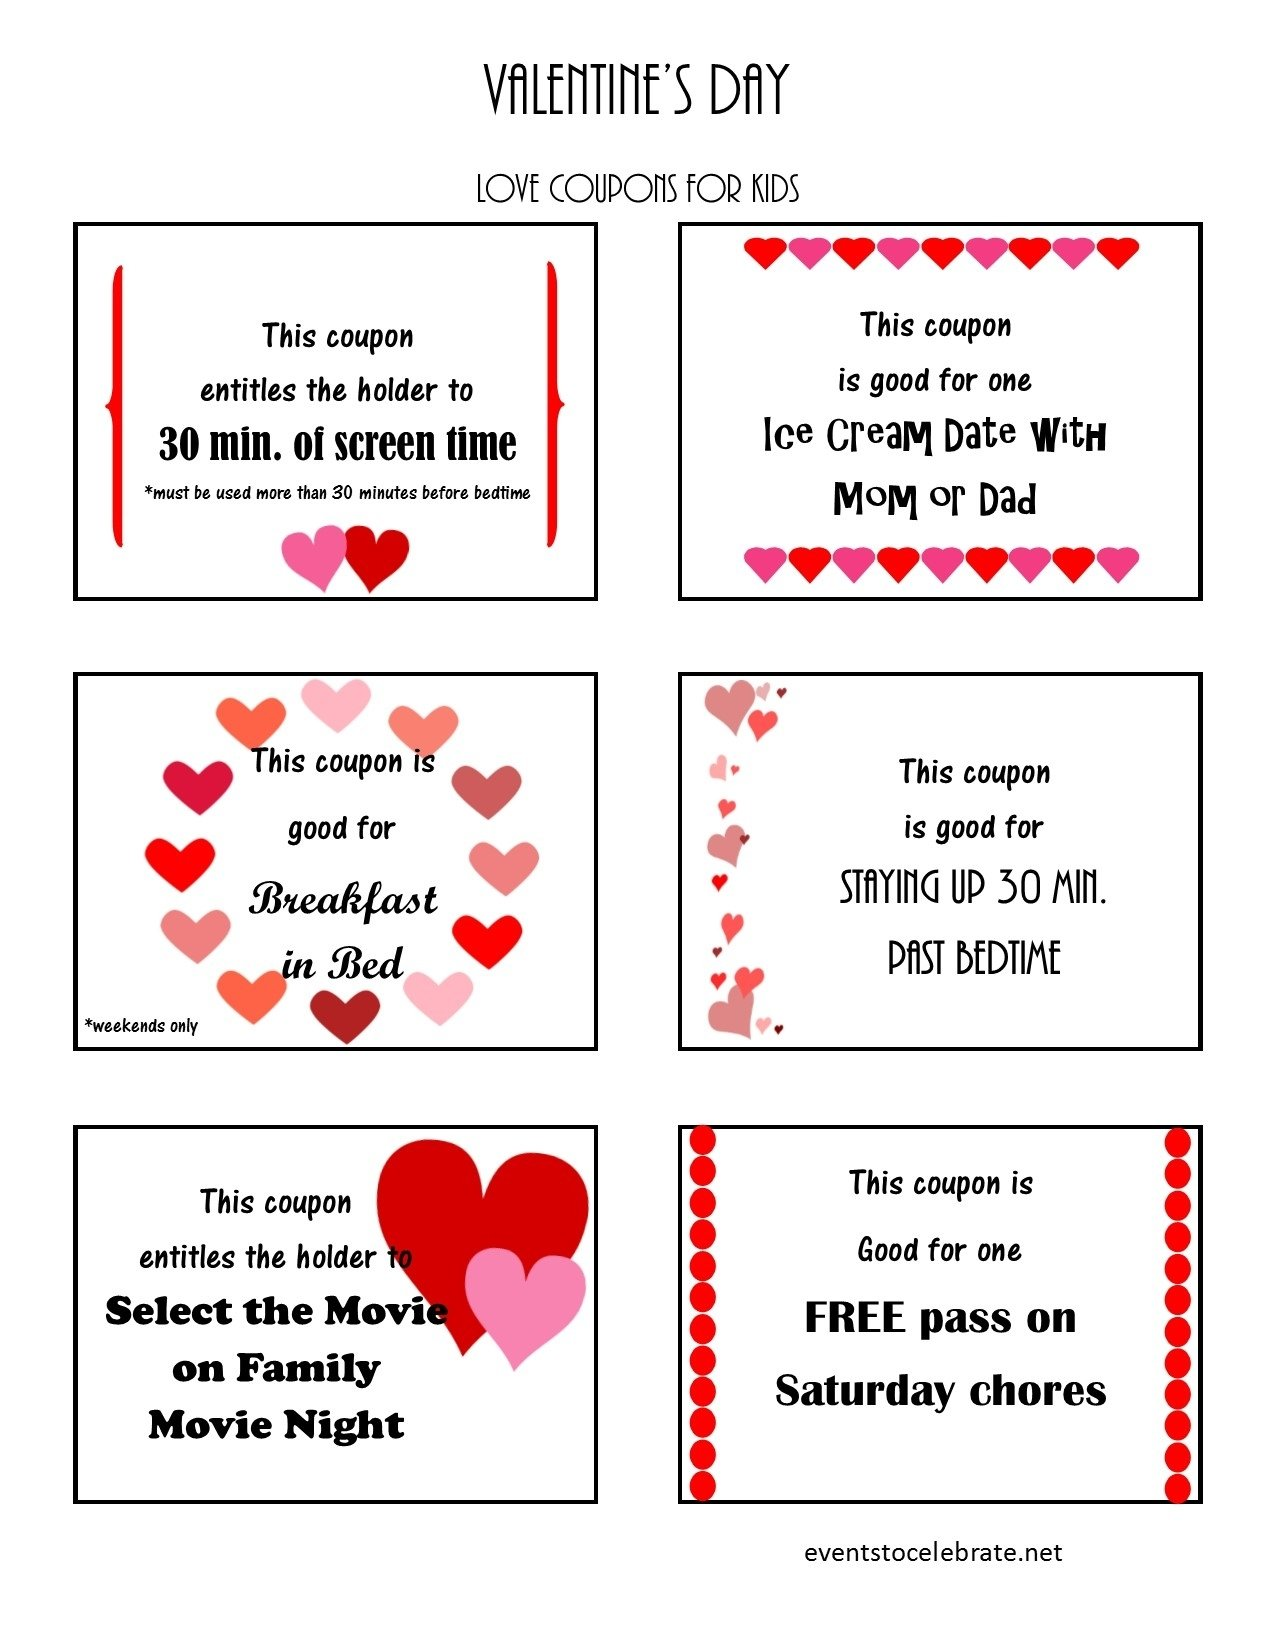 10 Attractive Valentine Coupon Book Ideas For Guys valentines day coupon book template for boyfriend freebies journalism 2020